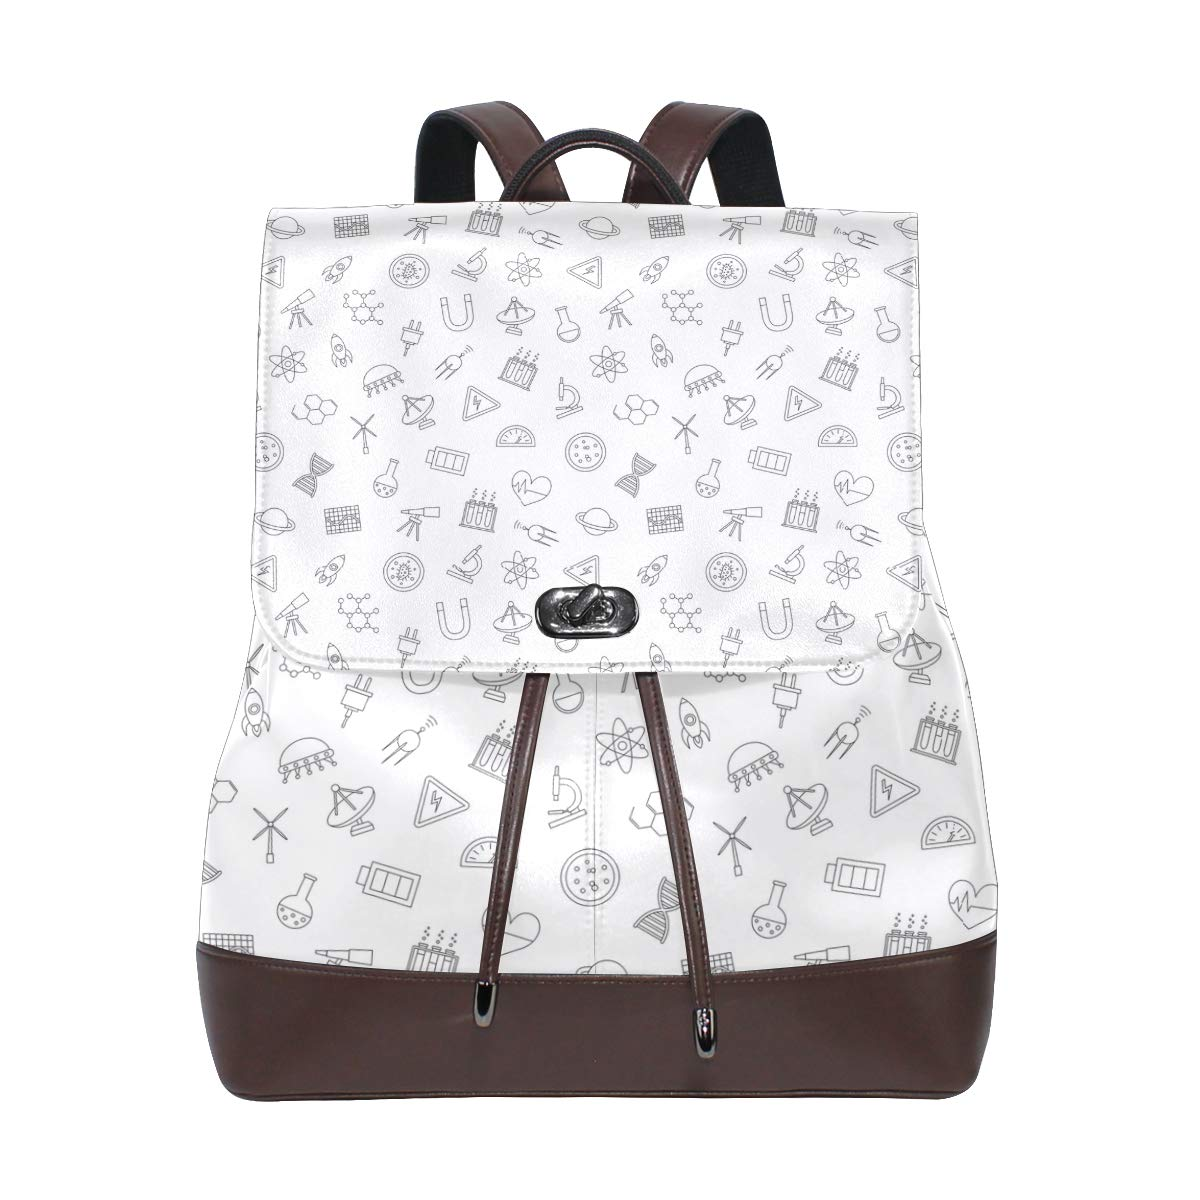 Leather Science Pattern Icons Black Backpack Daypack Bag Women